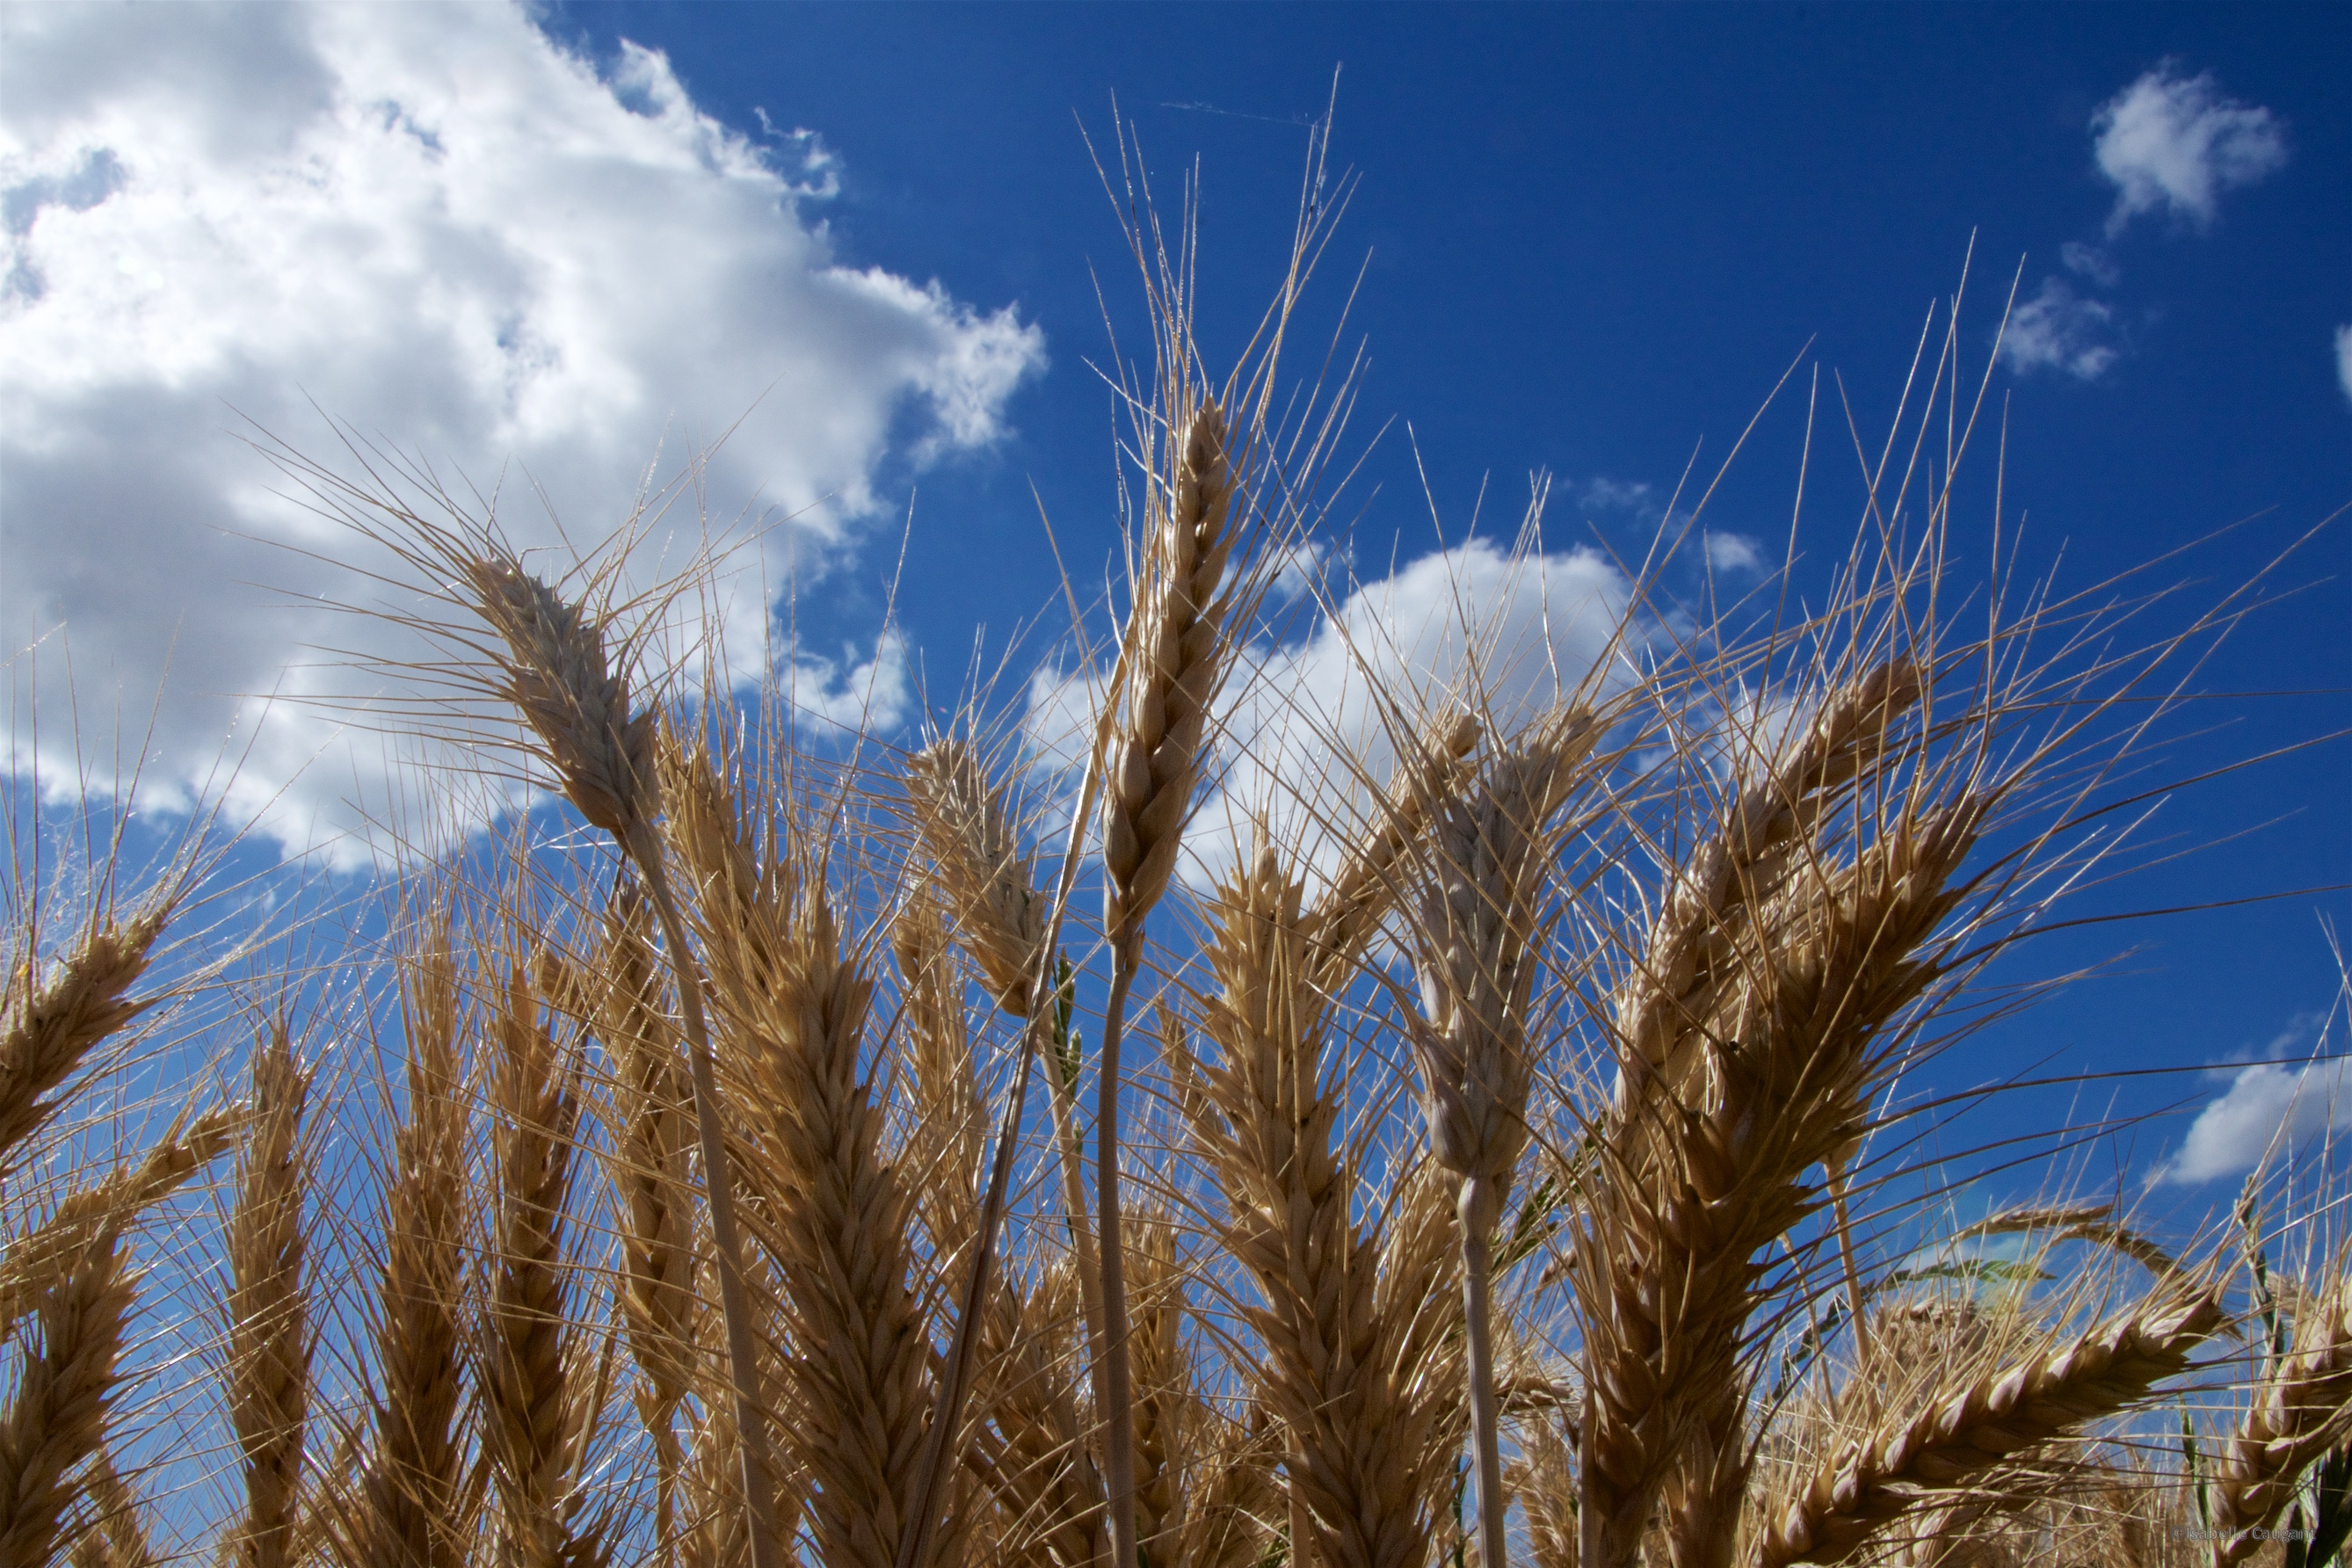 The genome sequence will lead to wheat crops with enhanced nutritional quality that are more resilient against climate change.